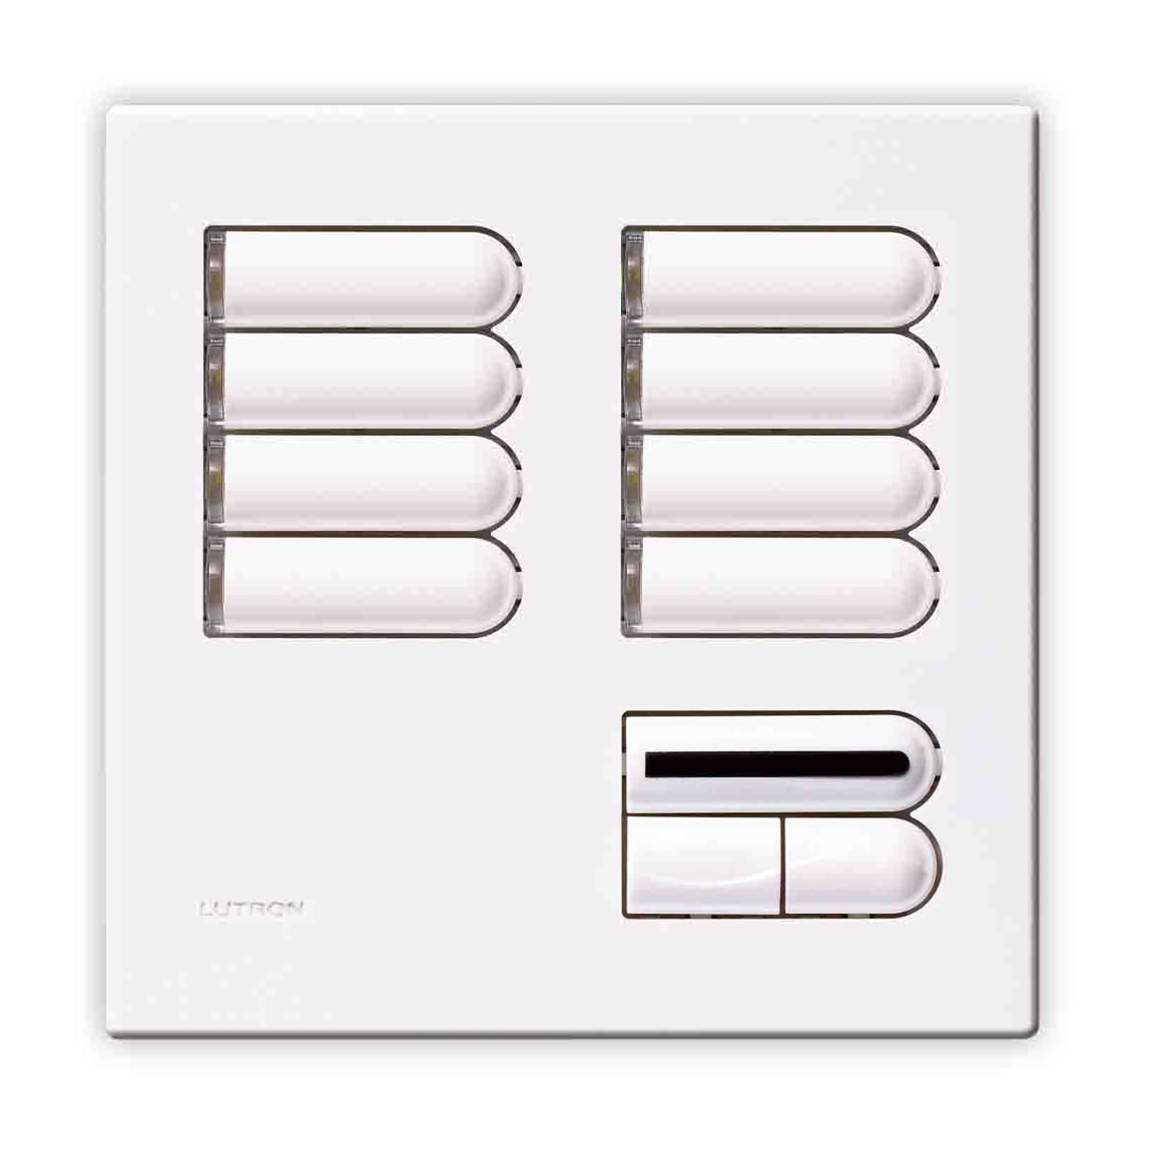 lutron european wall switch cover plate white egrx8sir. Black Bedroom Furniture Sets. Home Design Ideas